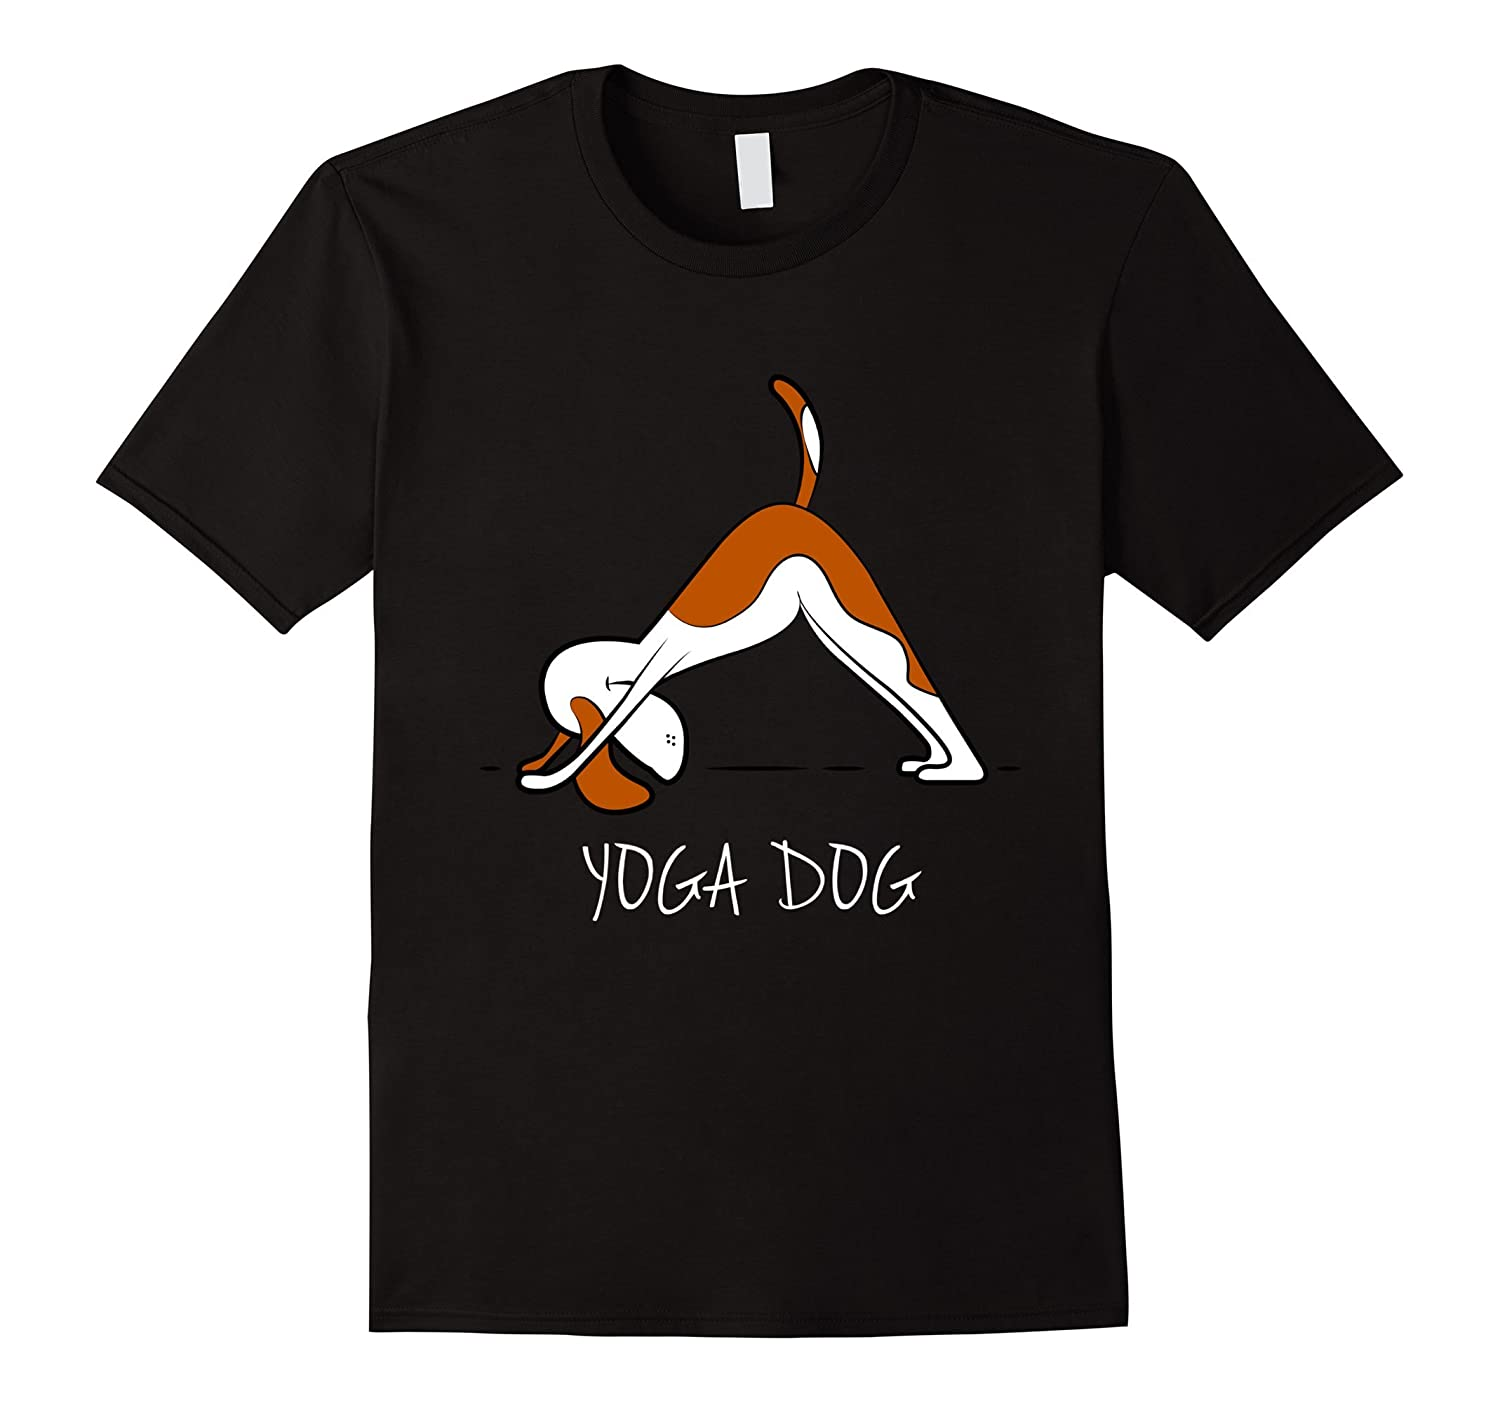 fun yoga shirts    yoga dog  Limited edition T-shirt-BN